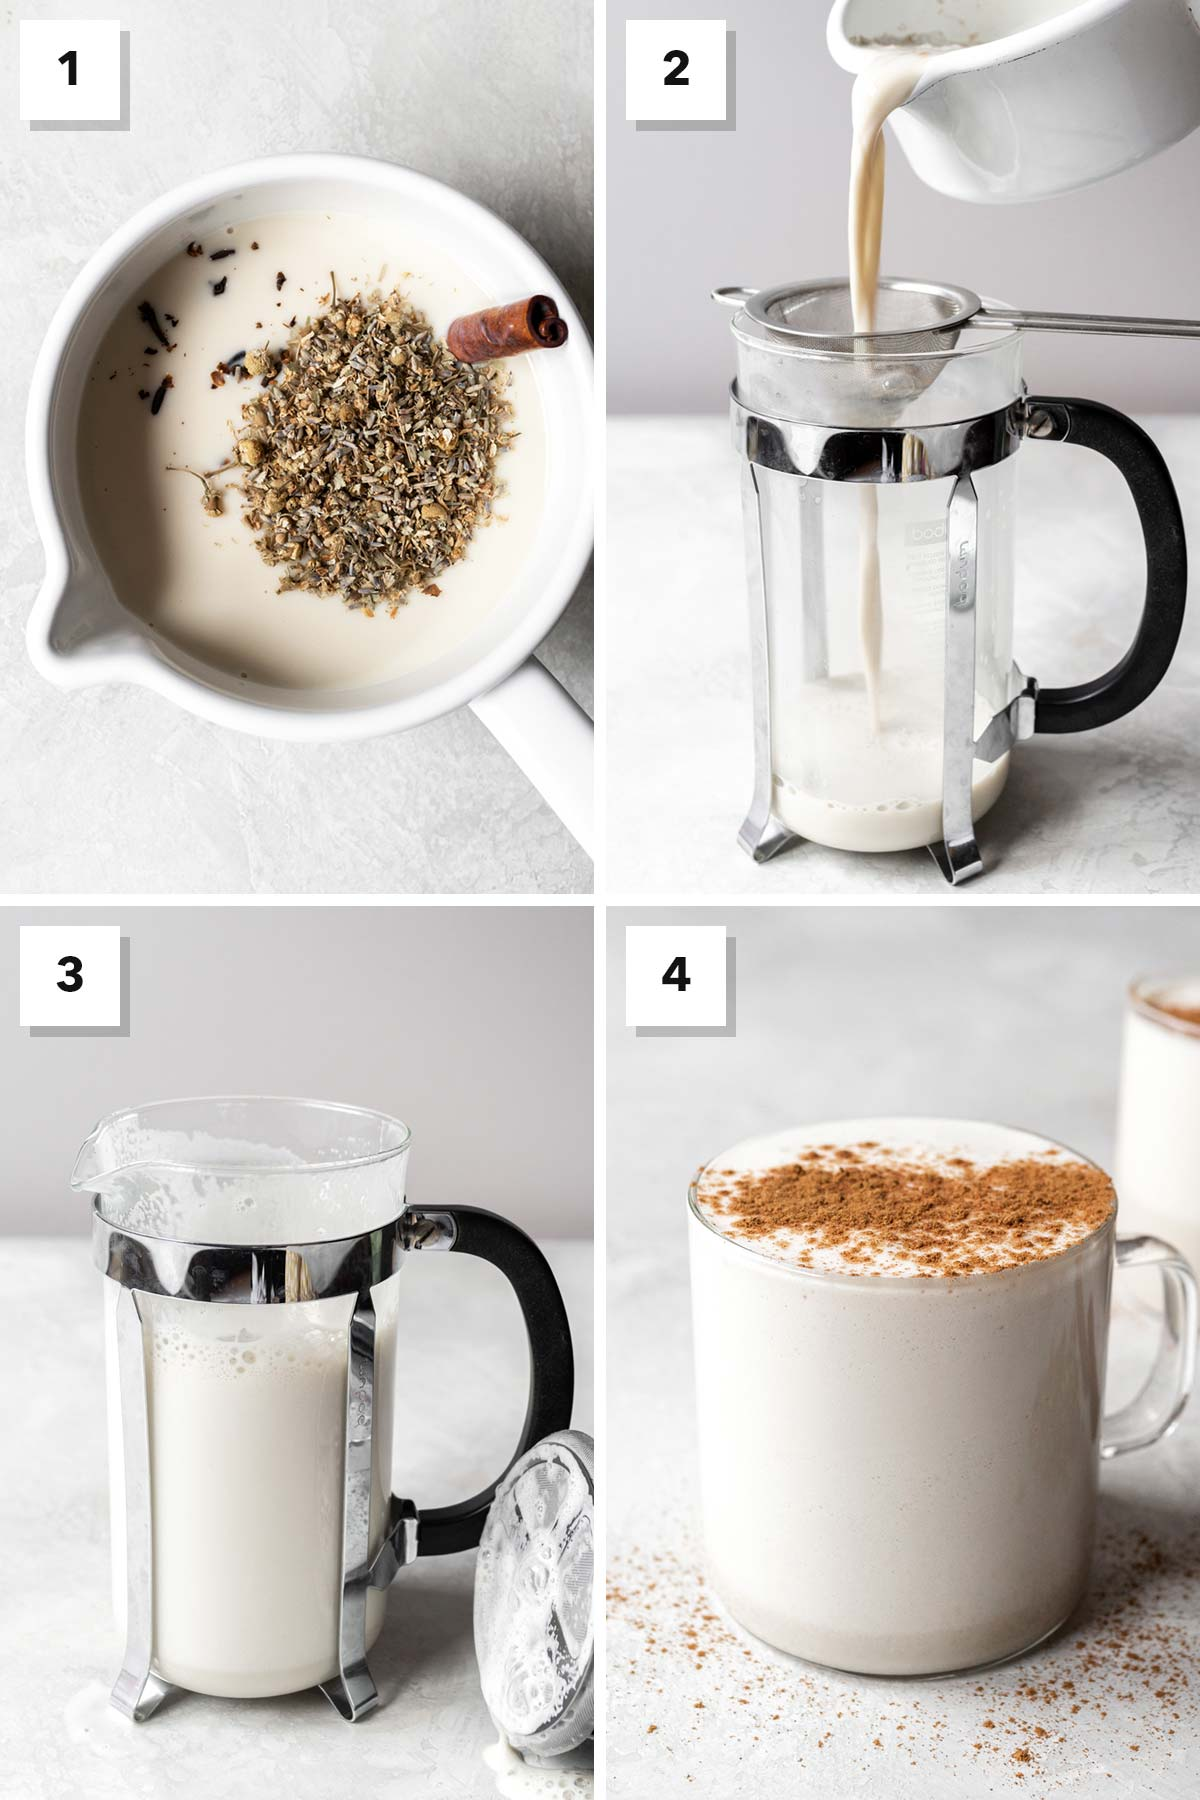 Four photo collage showing steps to make a chamomile tea latte.